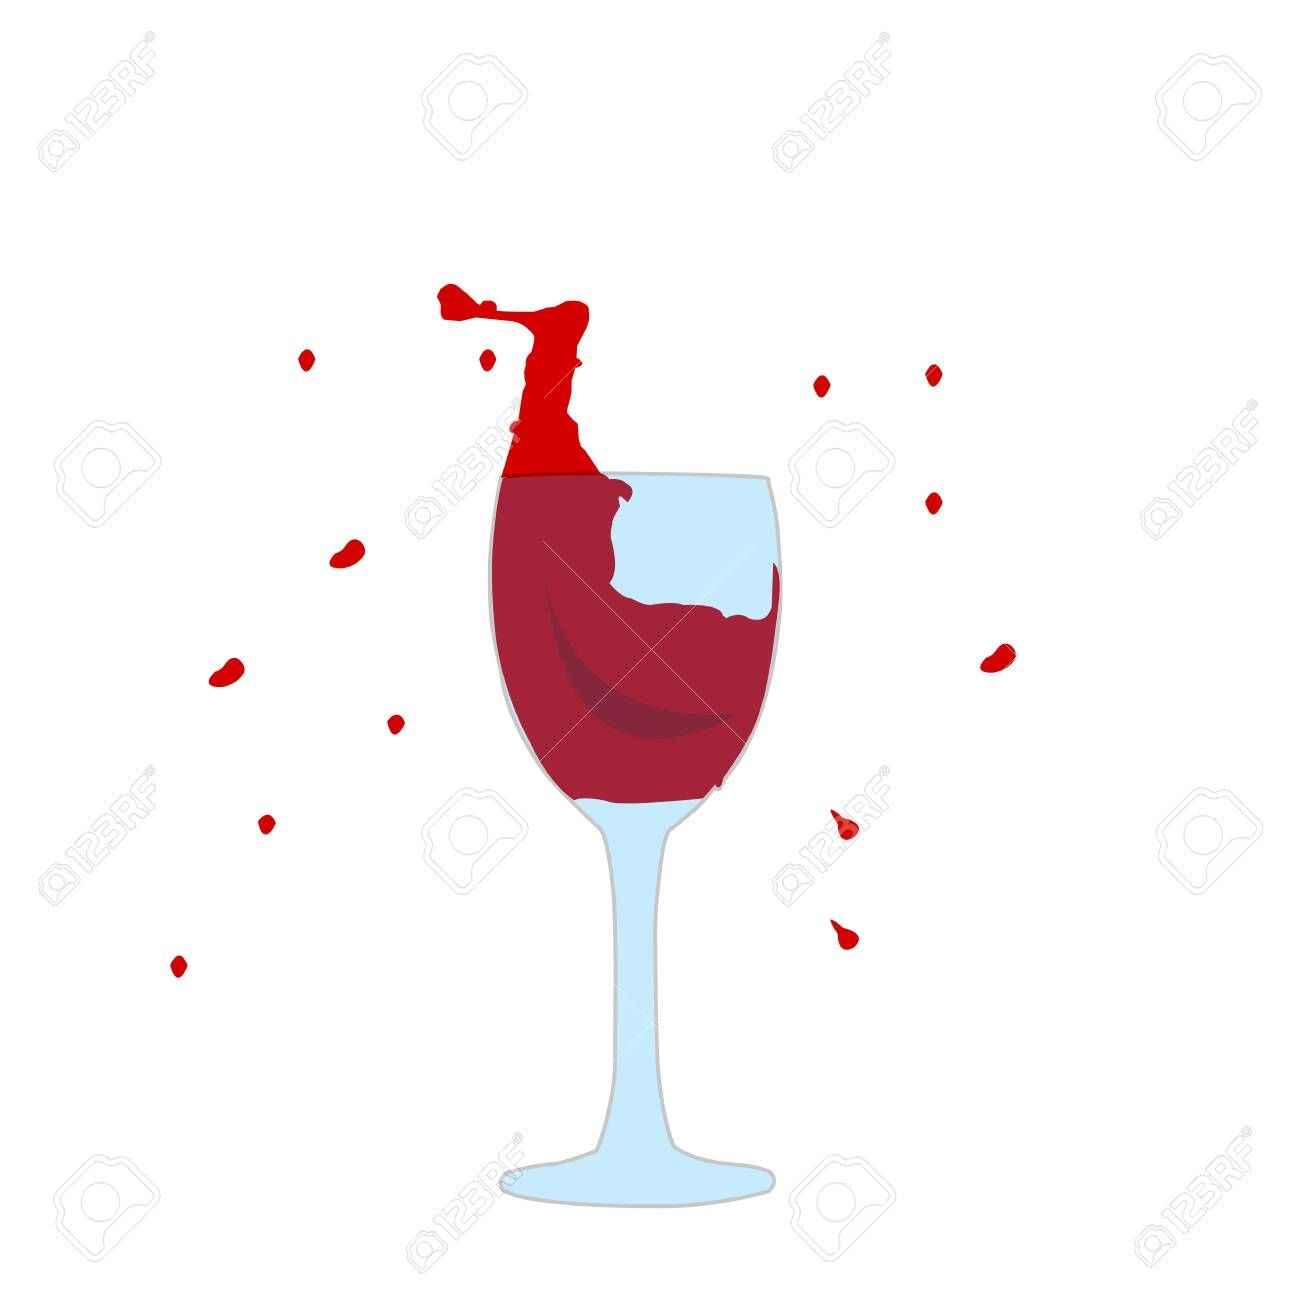 Splash Of Red Wine In A Glass Around Small Drops Alcohol Drinks Concept Aff Wine Glass Splash Red S In 2020 Alcoholic Drinks Character Illustration Splash